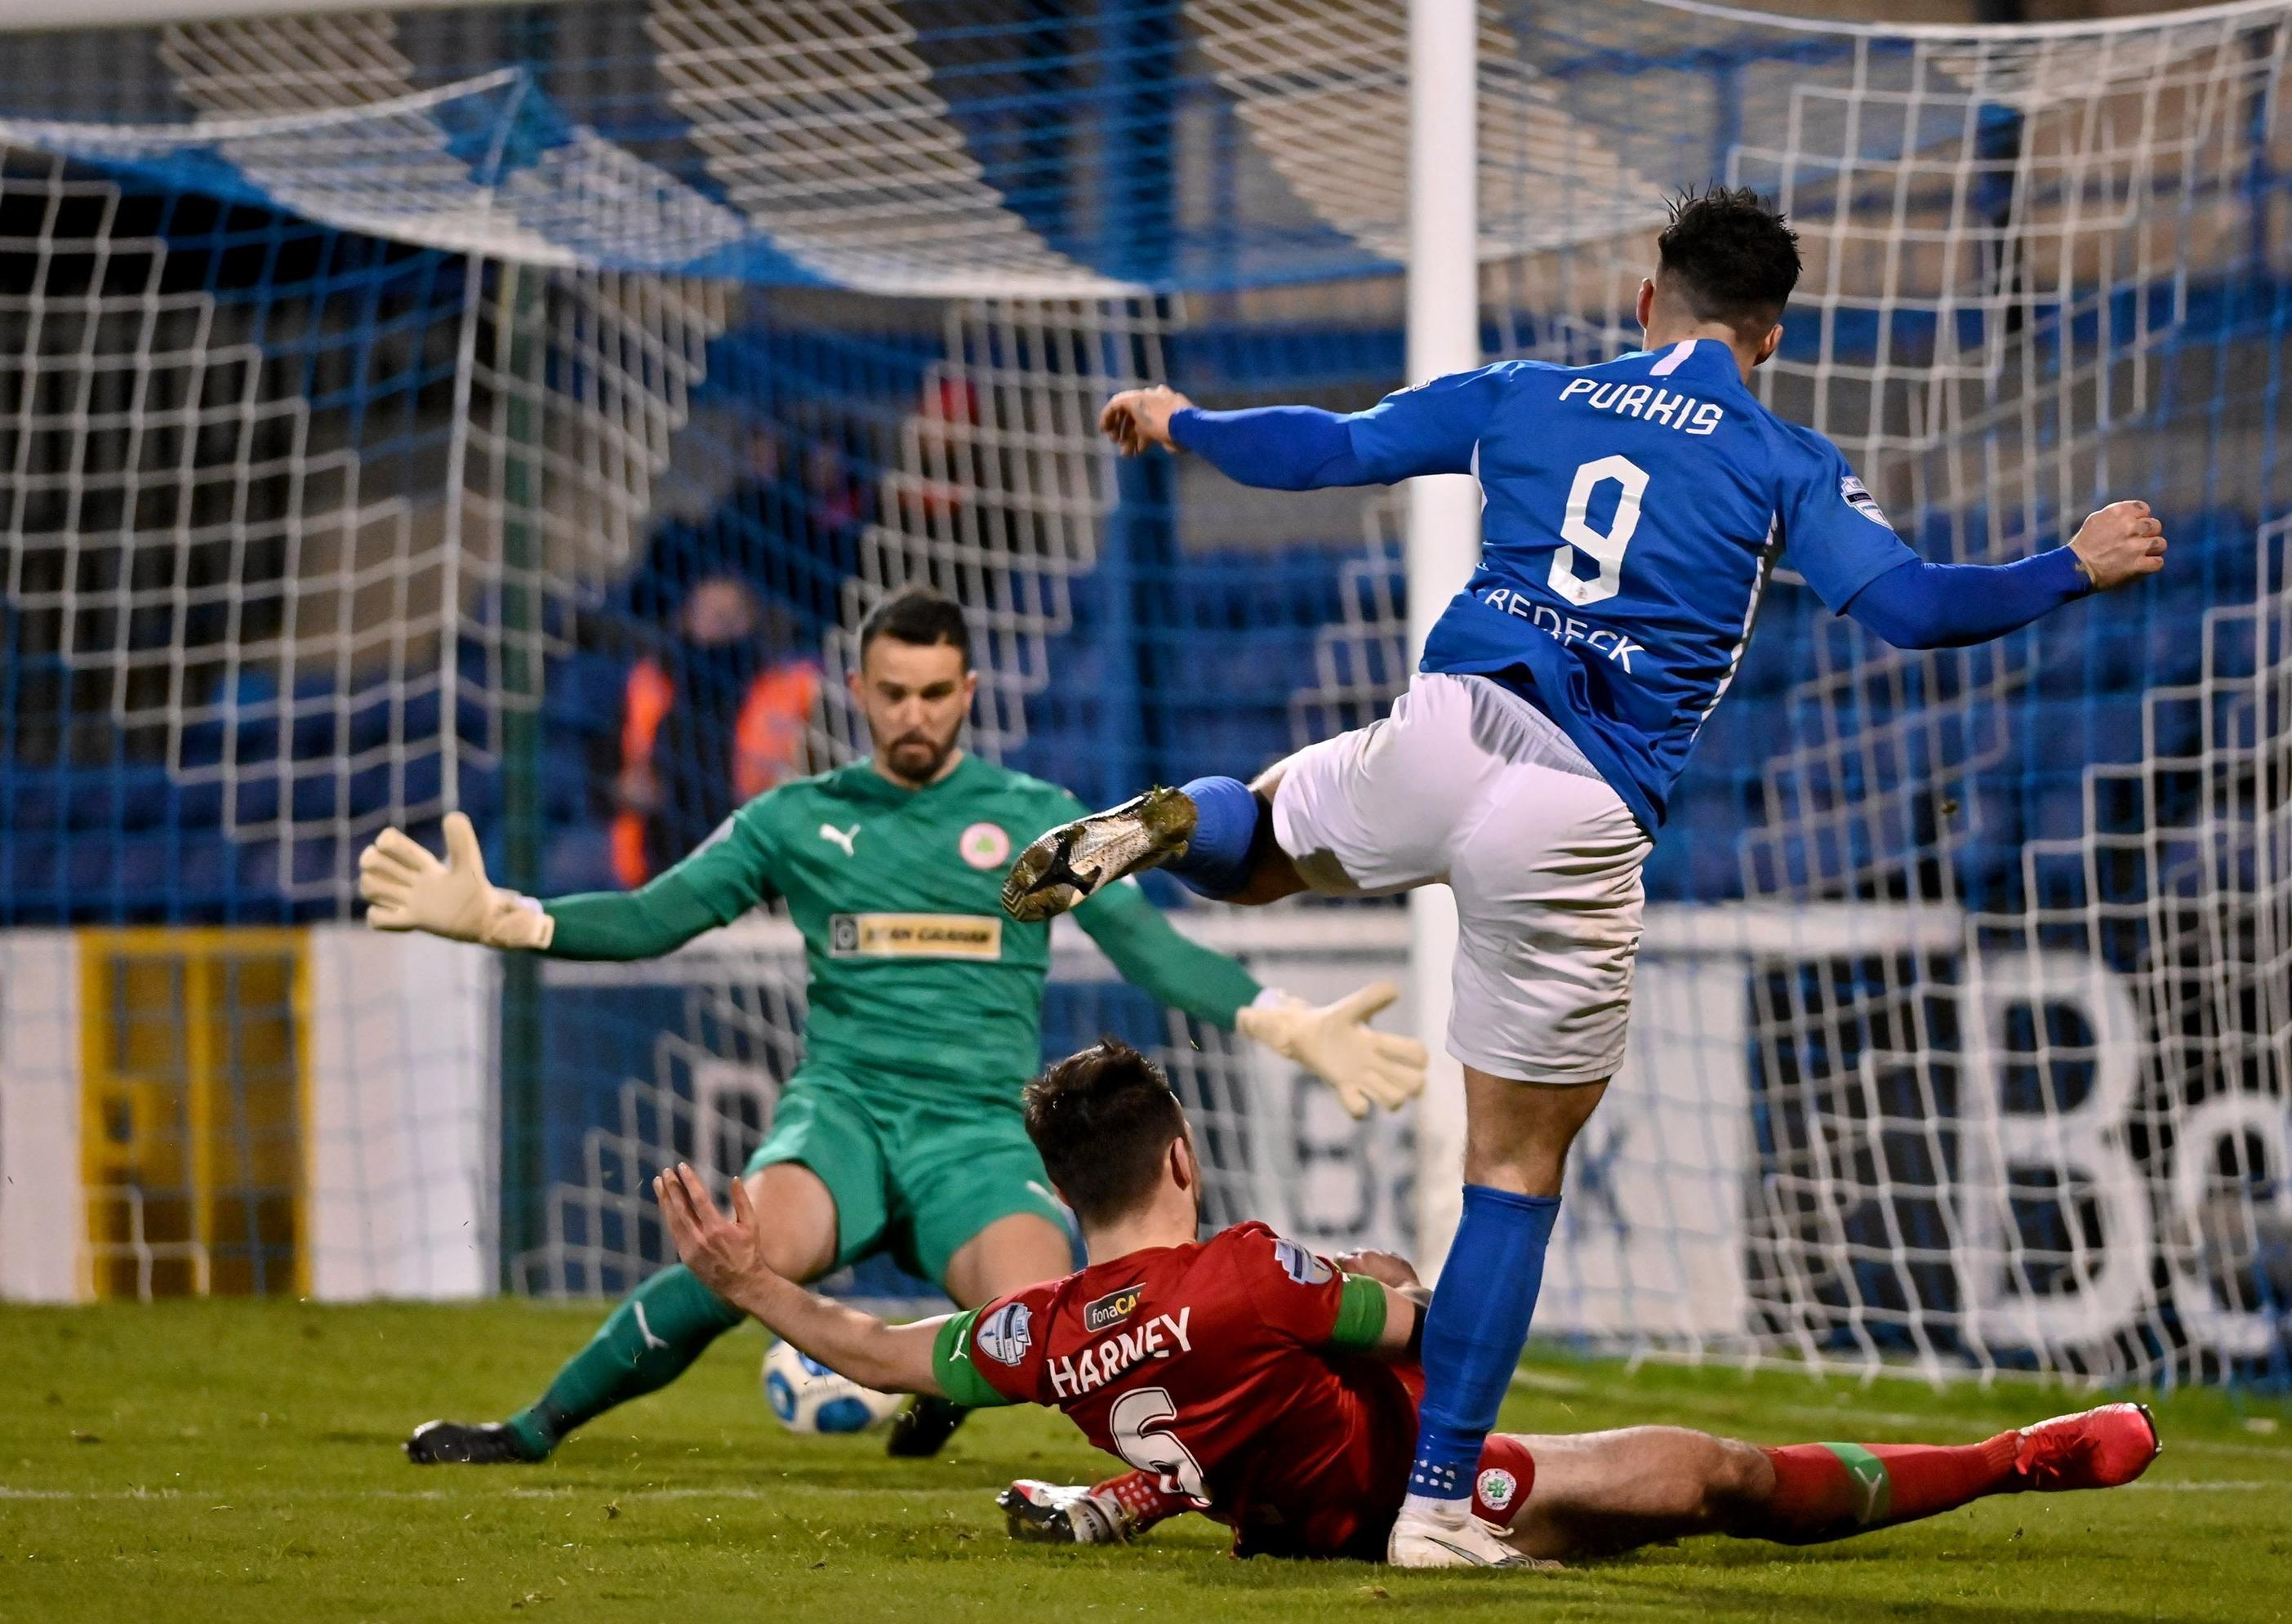 Glenavon reward as Danny Purkis 'gamble' pays off over Cliftonville |  Belfast News Letter